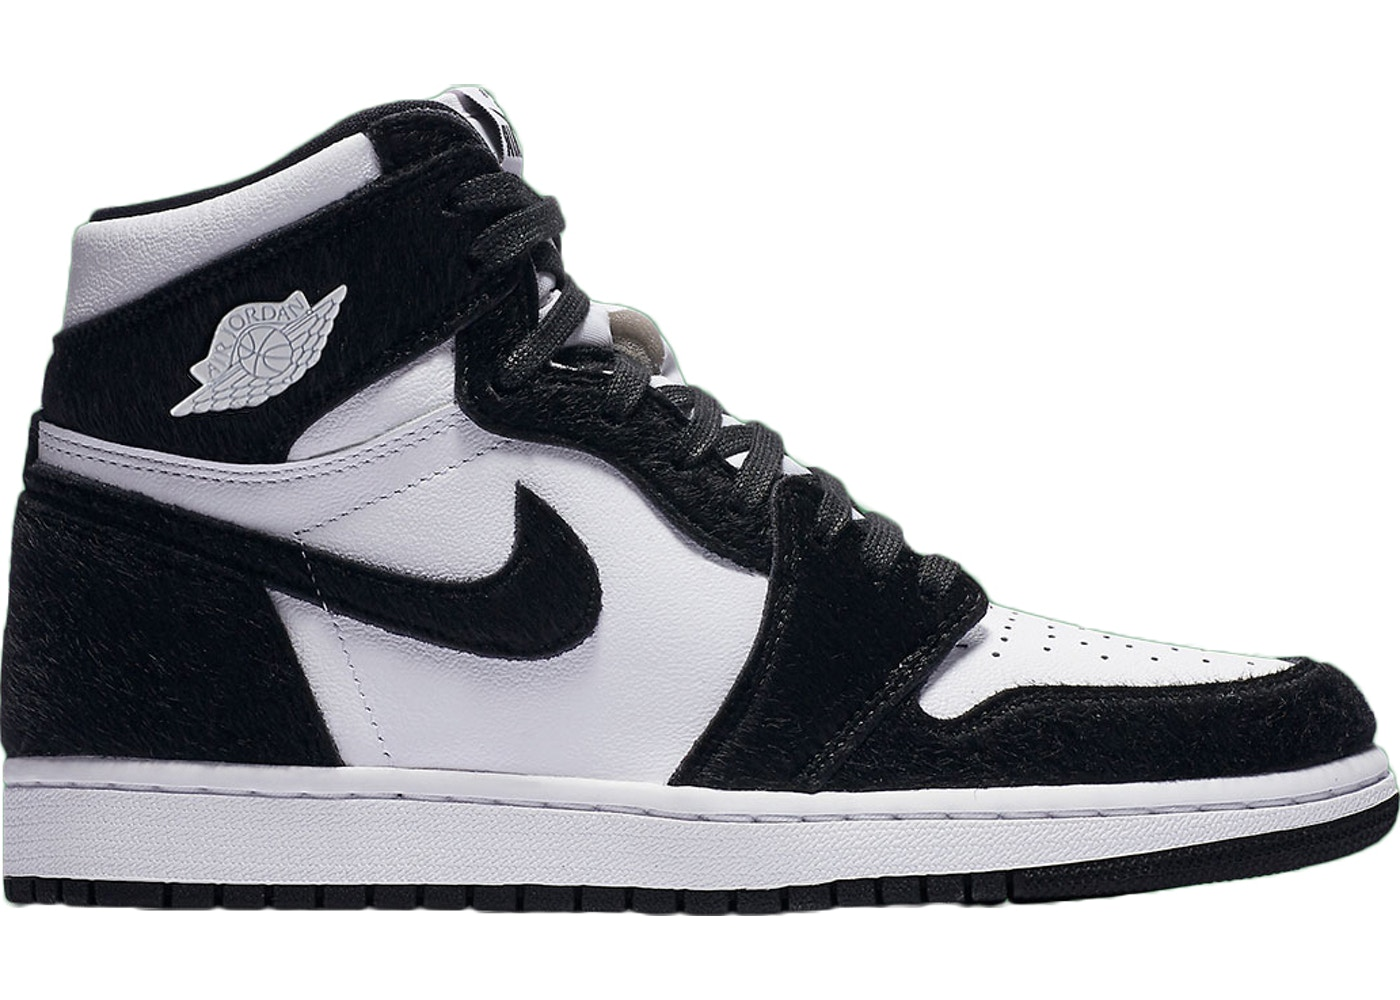 buy online 229d3 a10f0 Buy Air Jordan 1 Shoes   Deadstock Sneakers